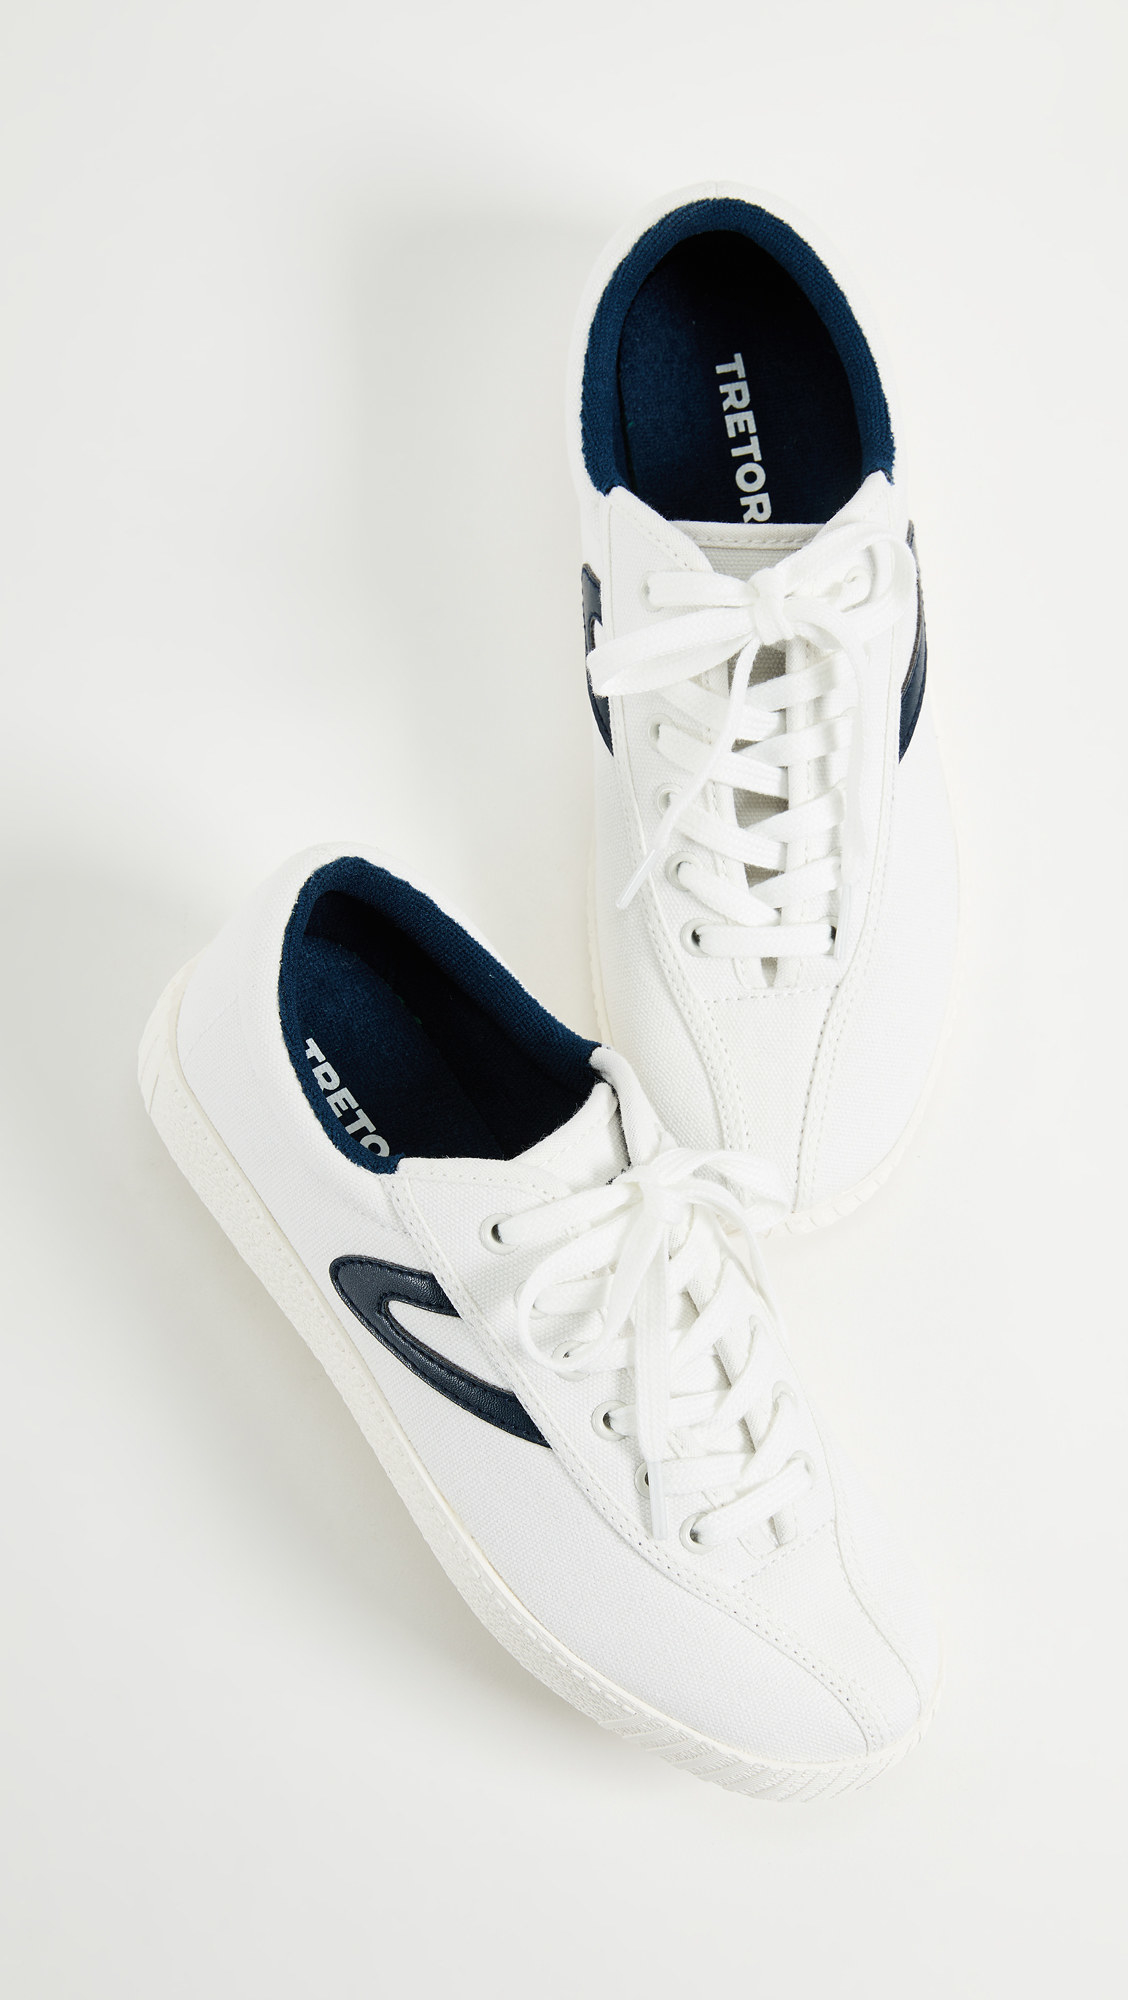 Close-up of the shoes on a white background